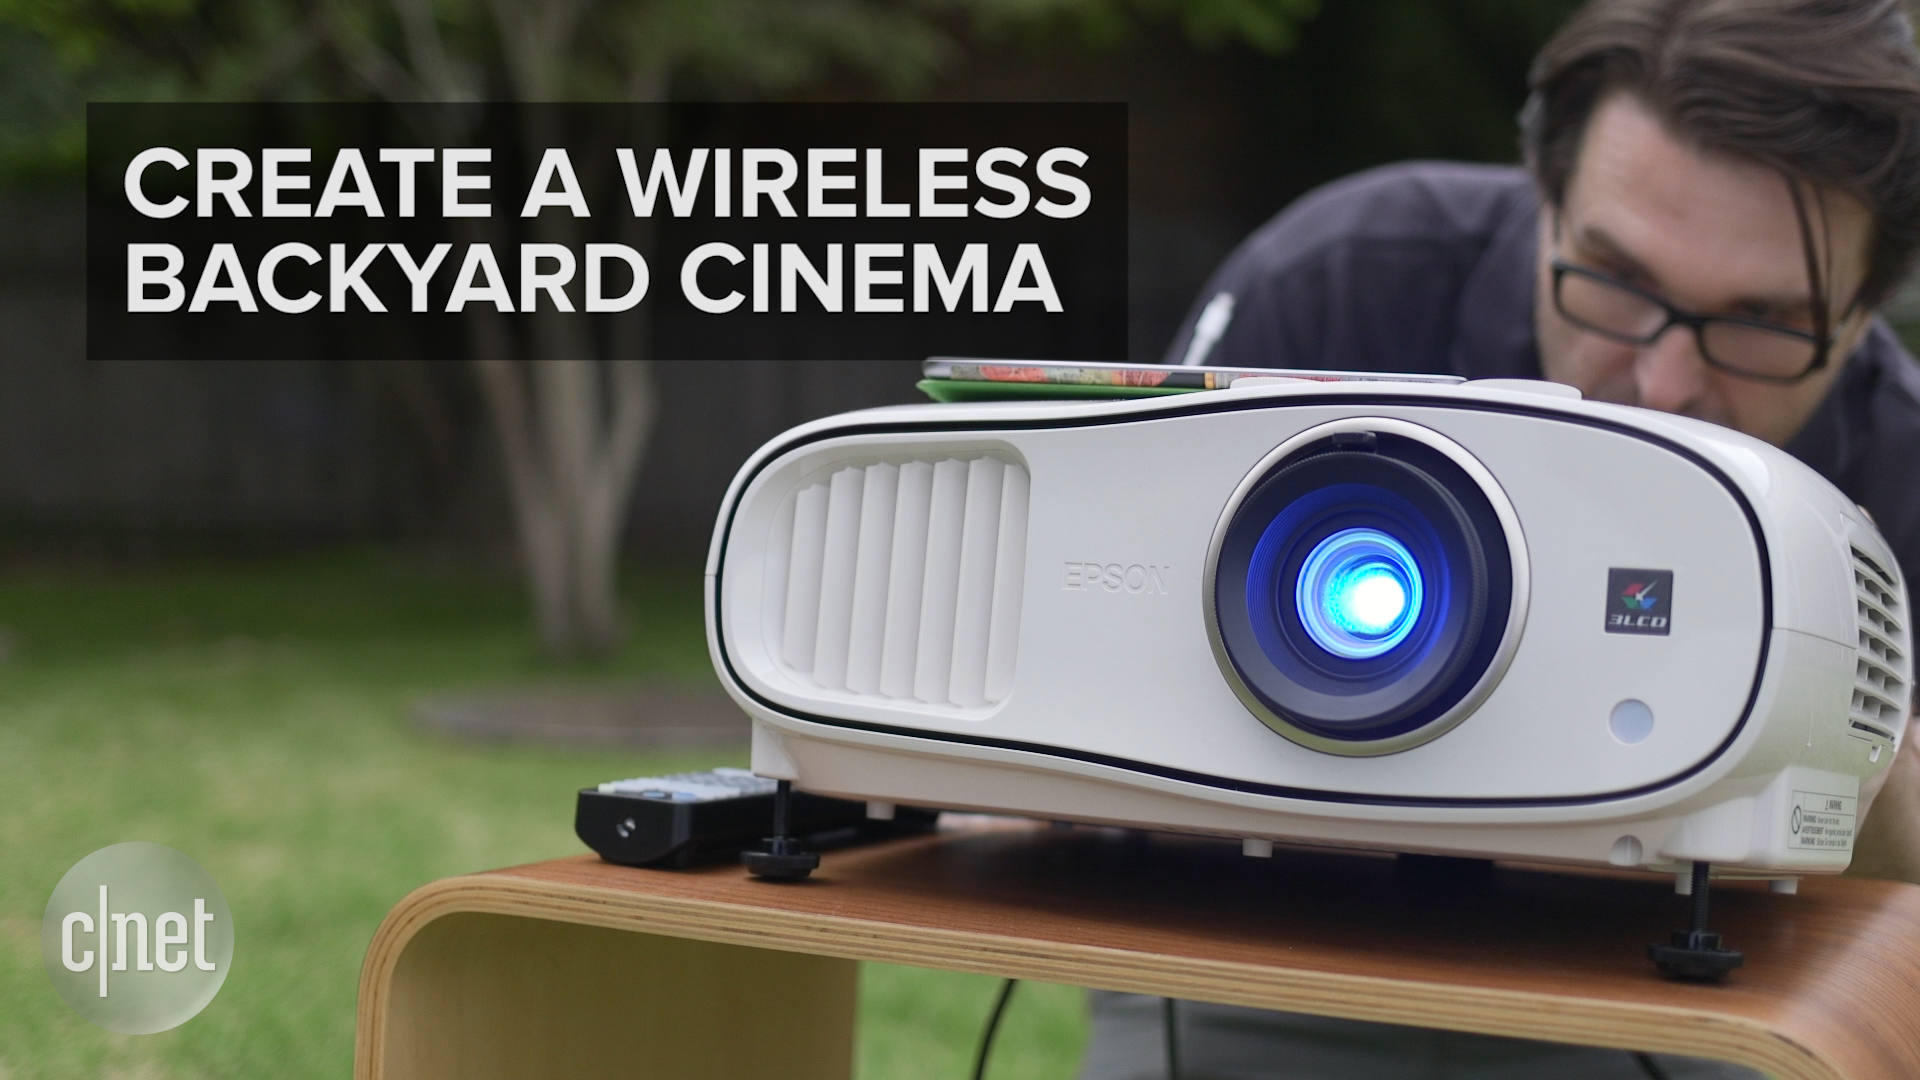 Video: Set up your own wireless backyard cinema